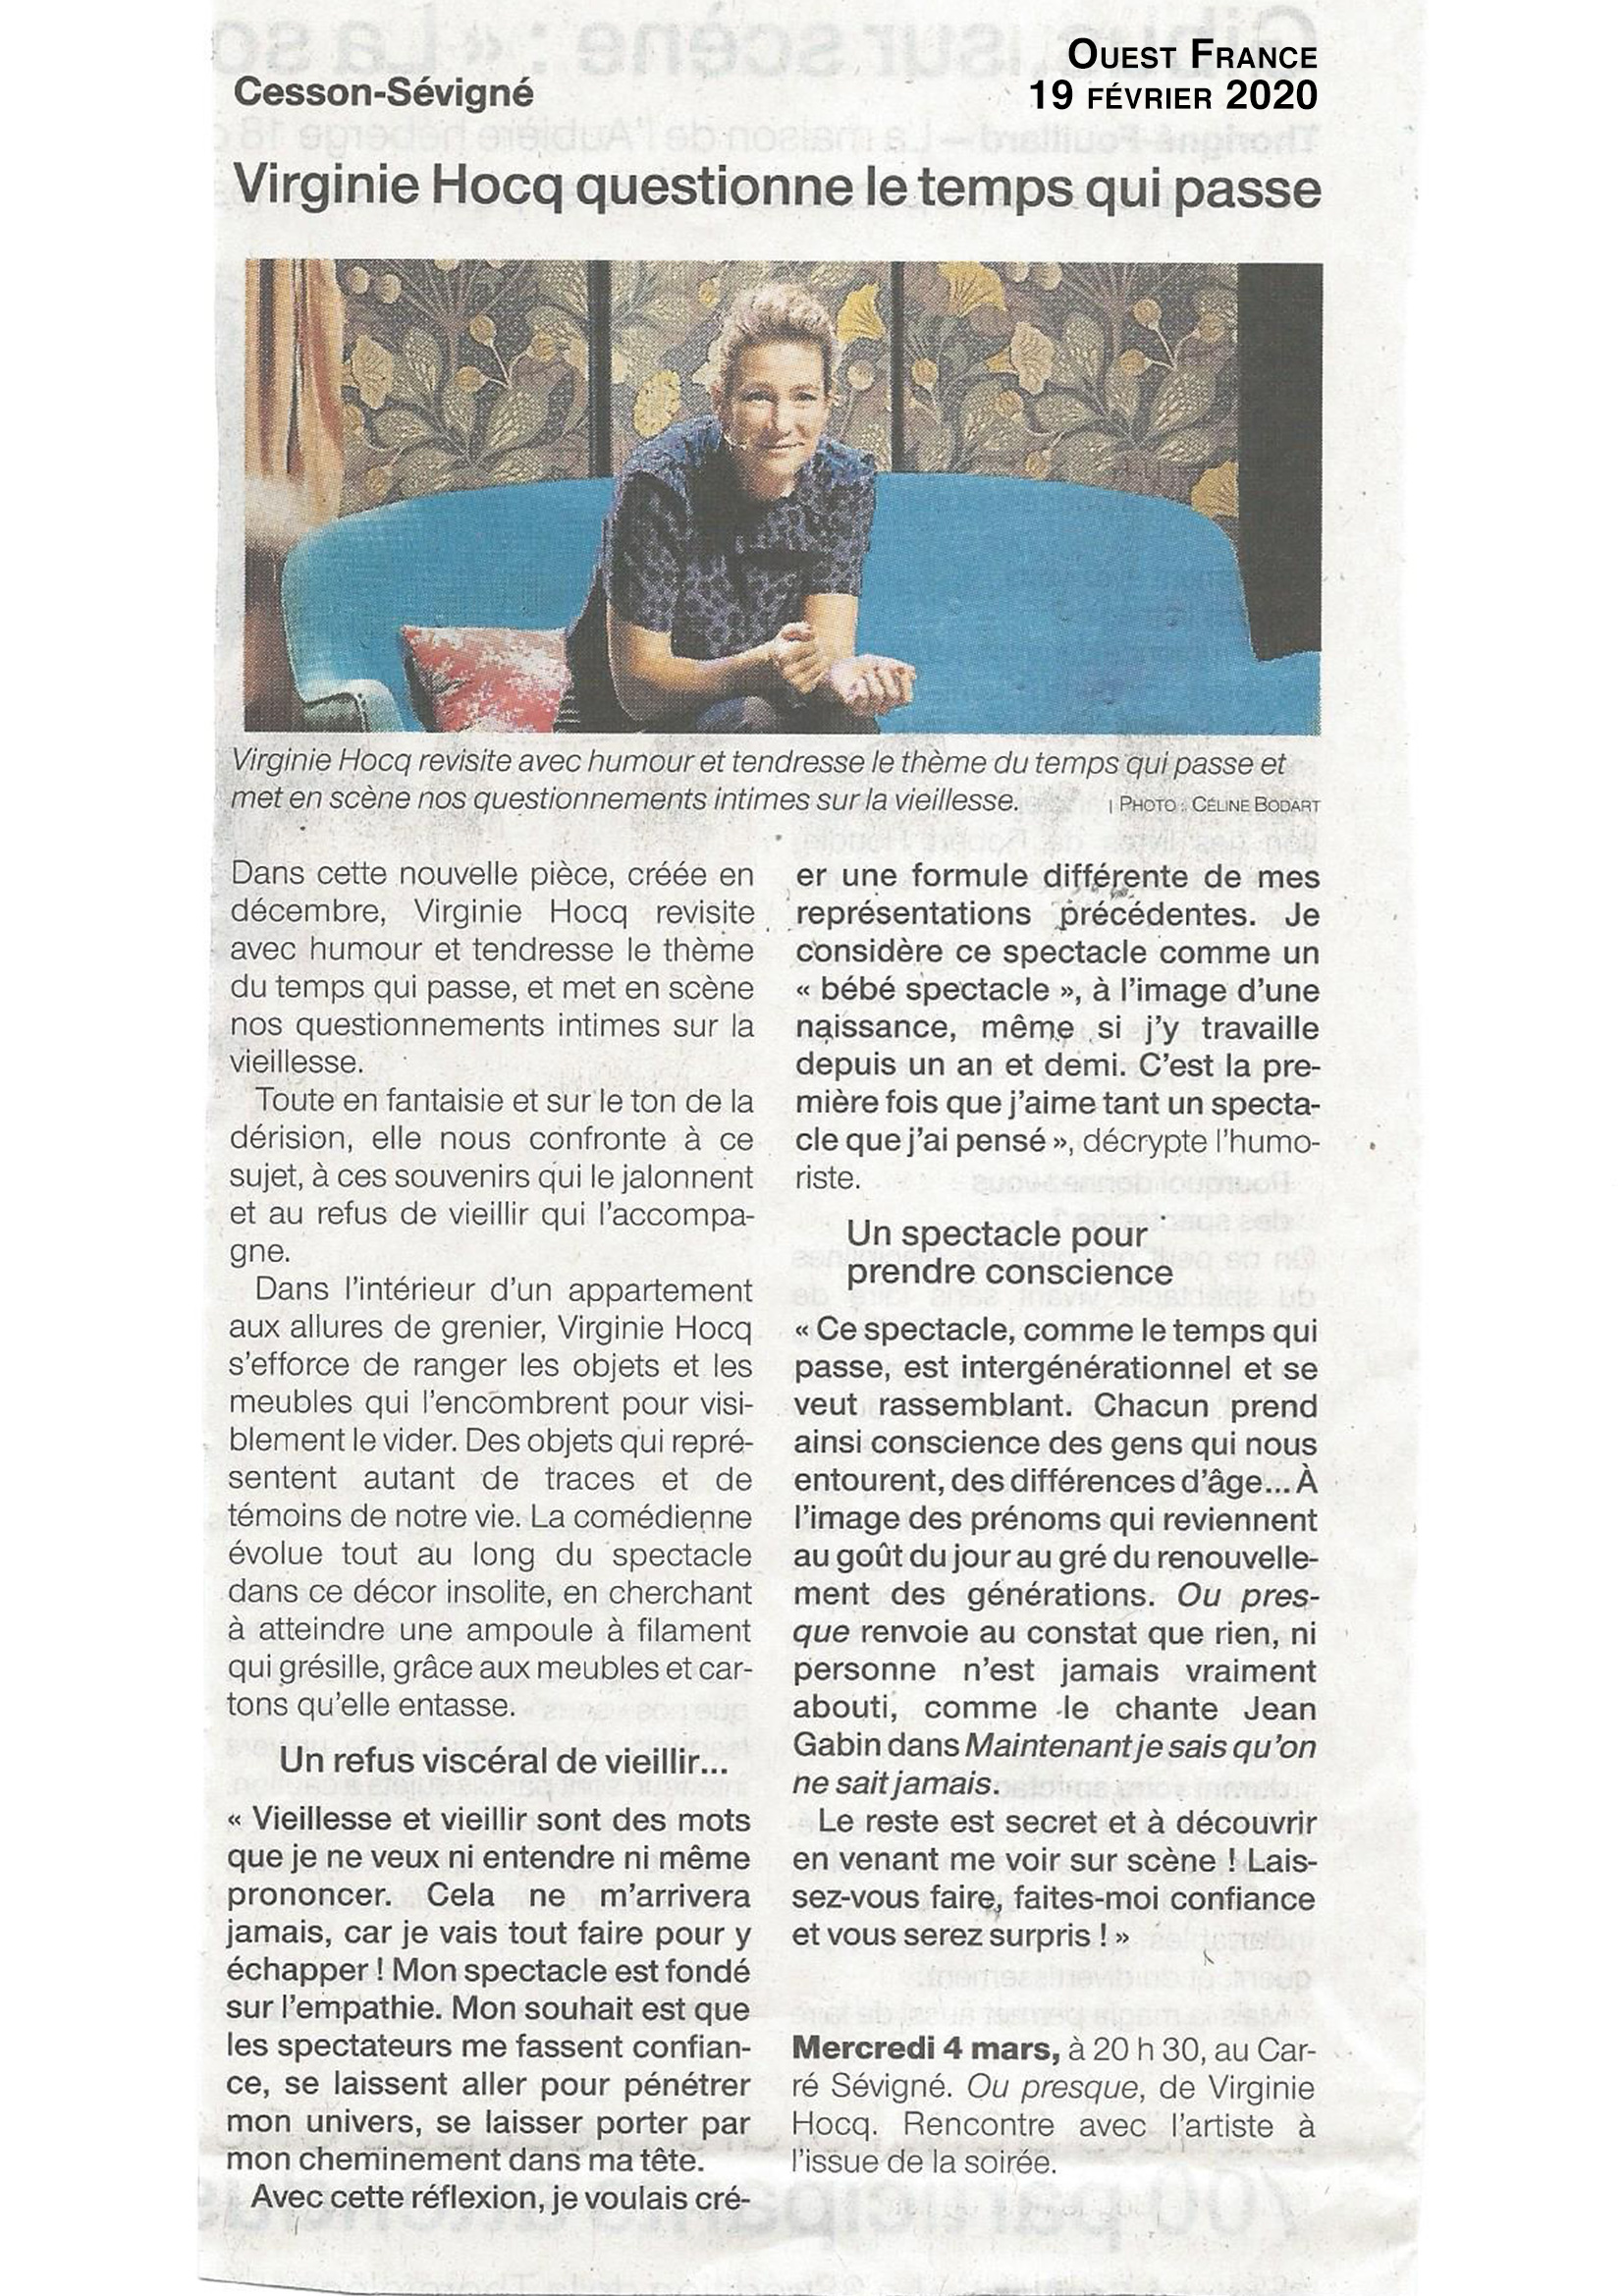 Ouest France 19.02.20